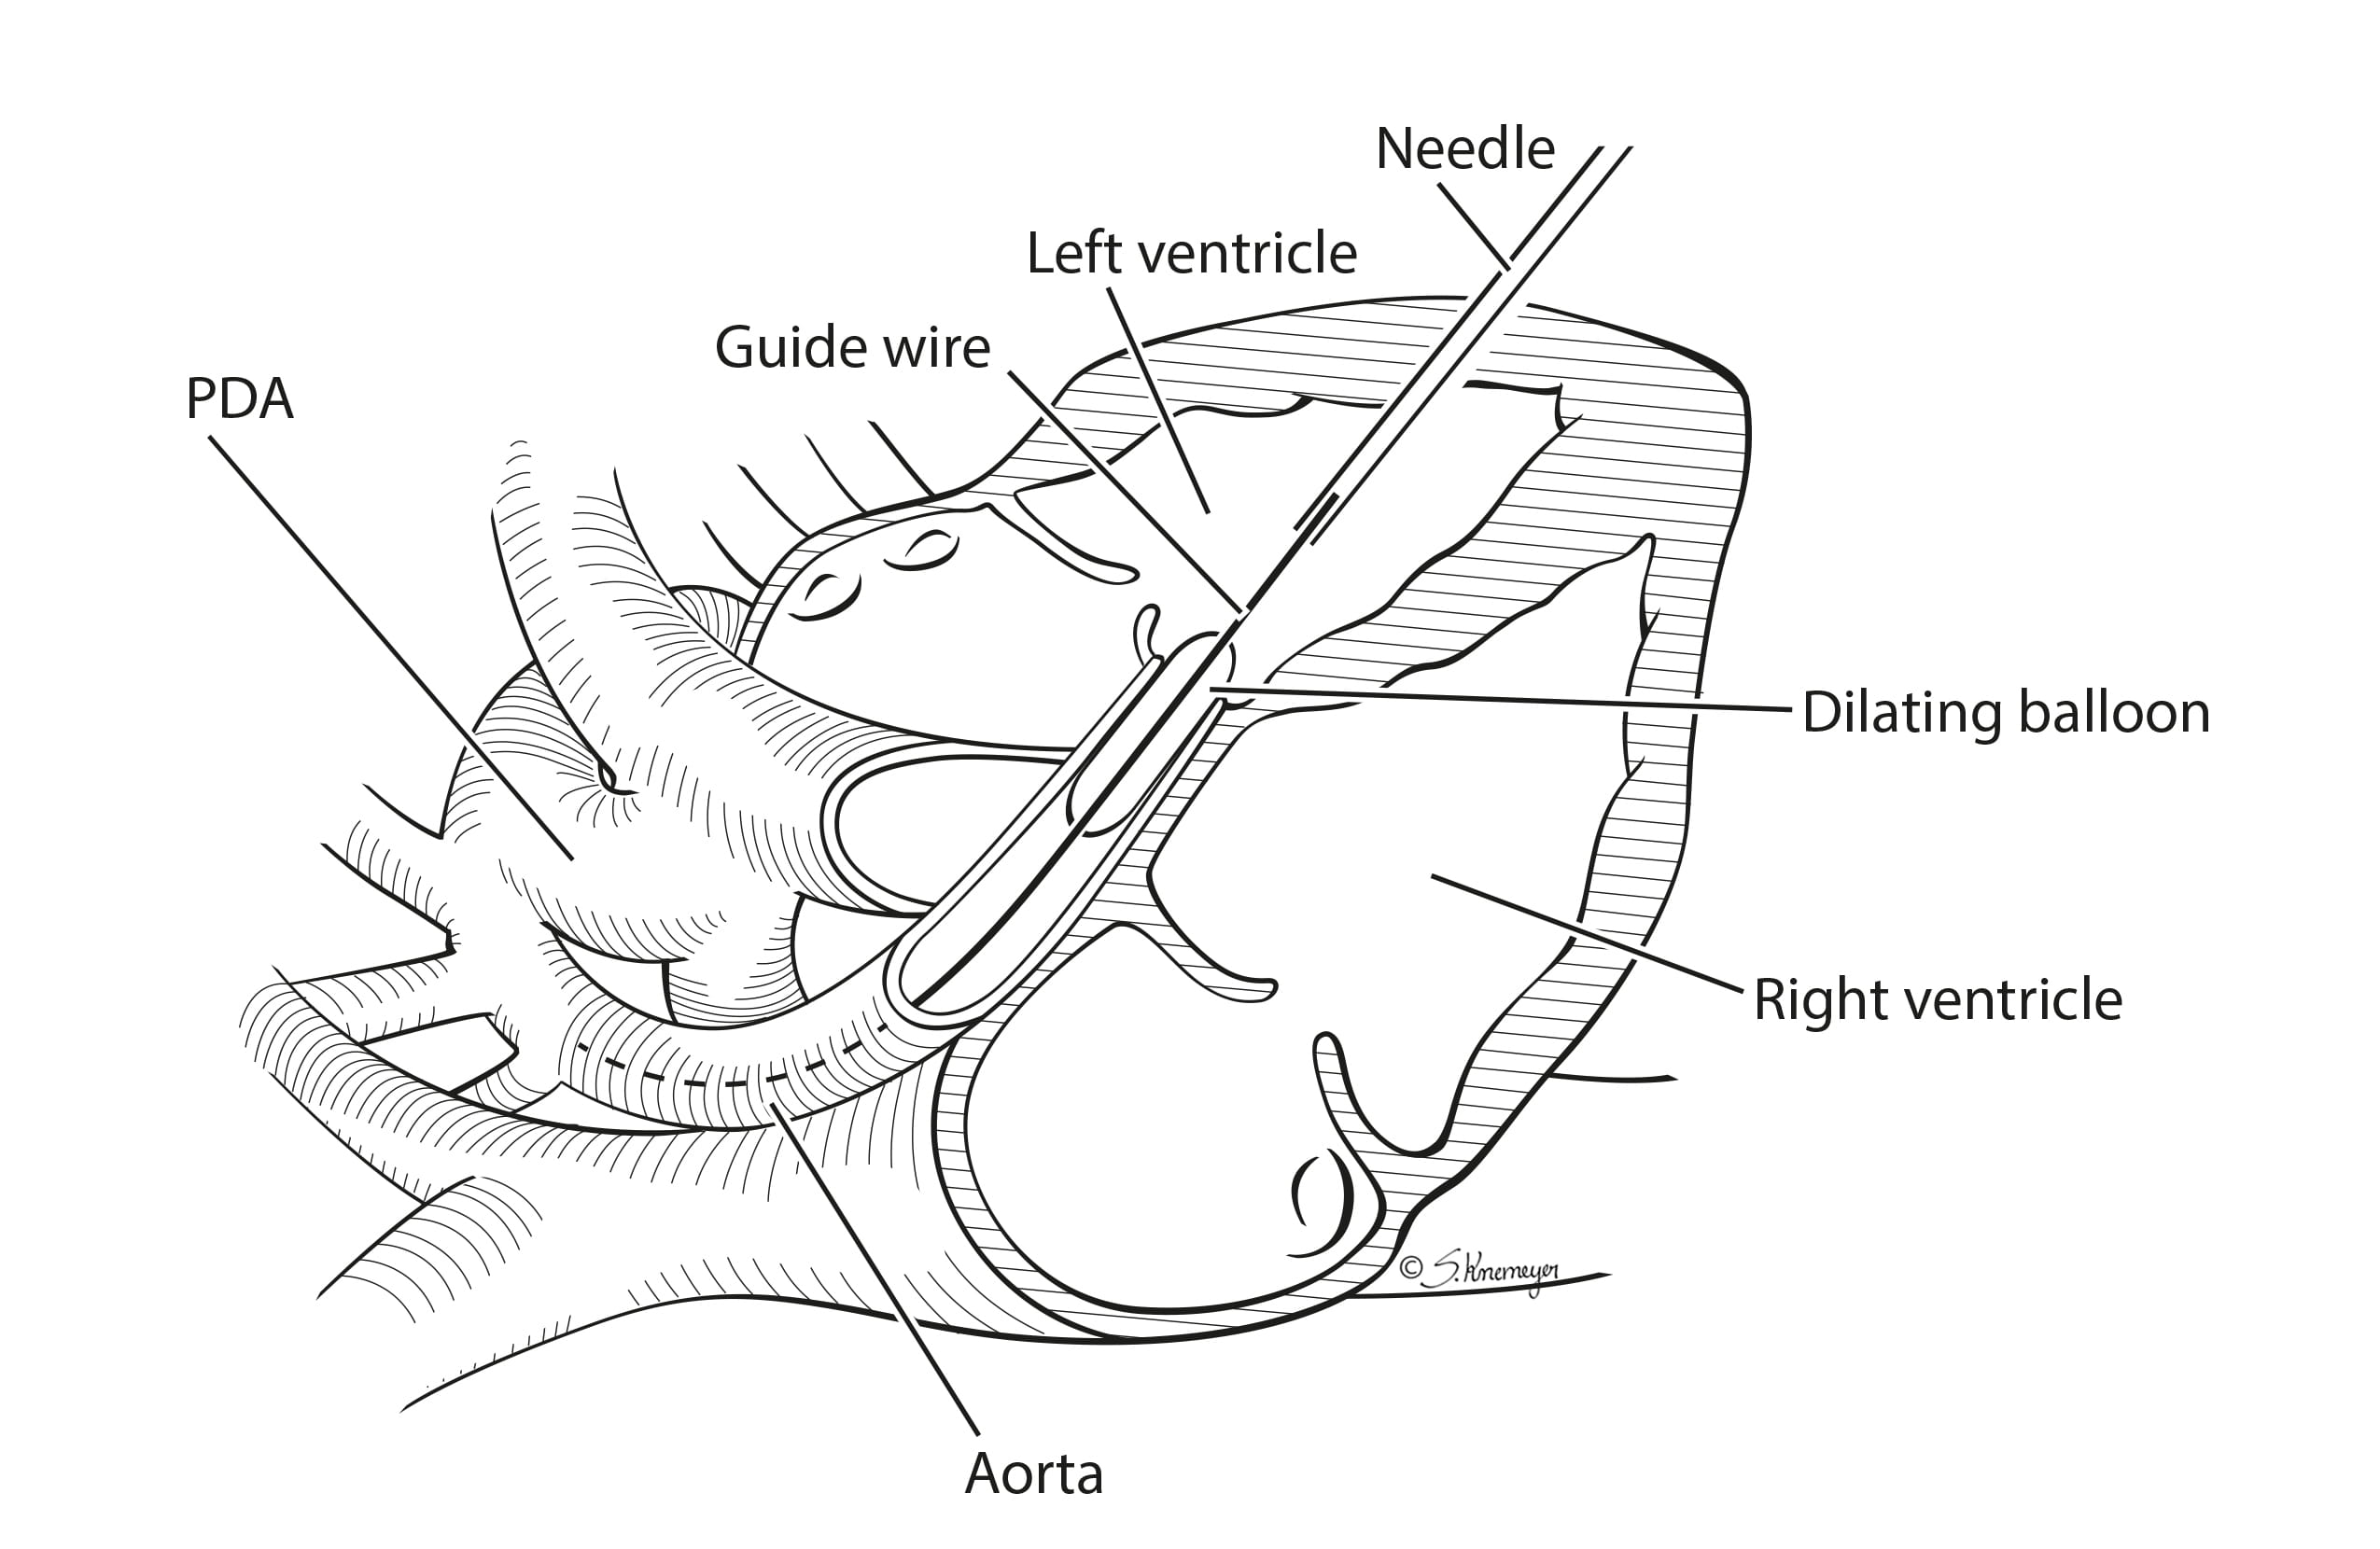 Fetal cardia intervention aortic stenosis illustration